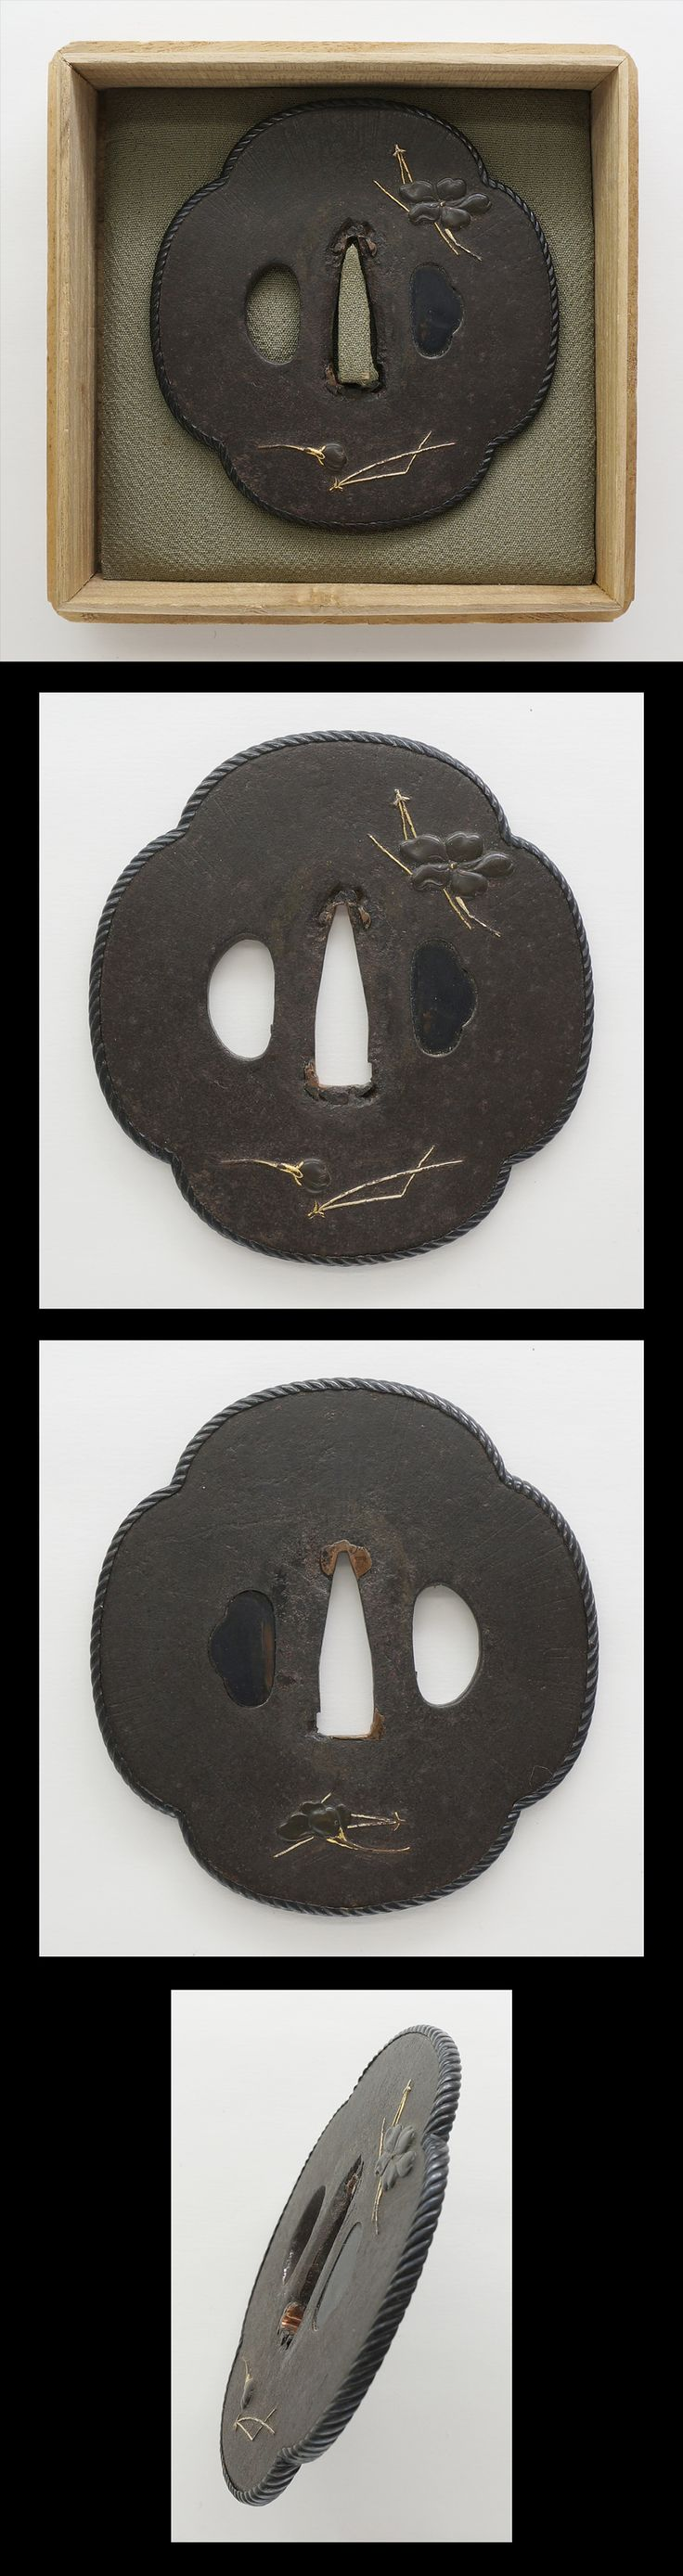 Tsuba: Mumei(Unsigned) Cherryblossom and Pine Leaf Design | Japanese Sword Shop Aoi-Art.